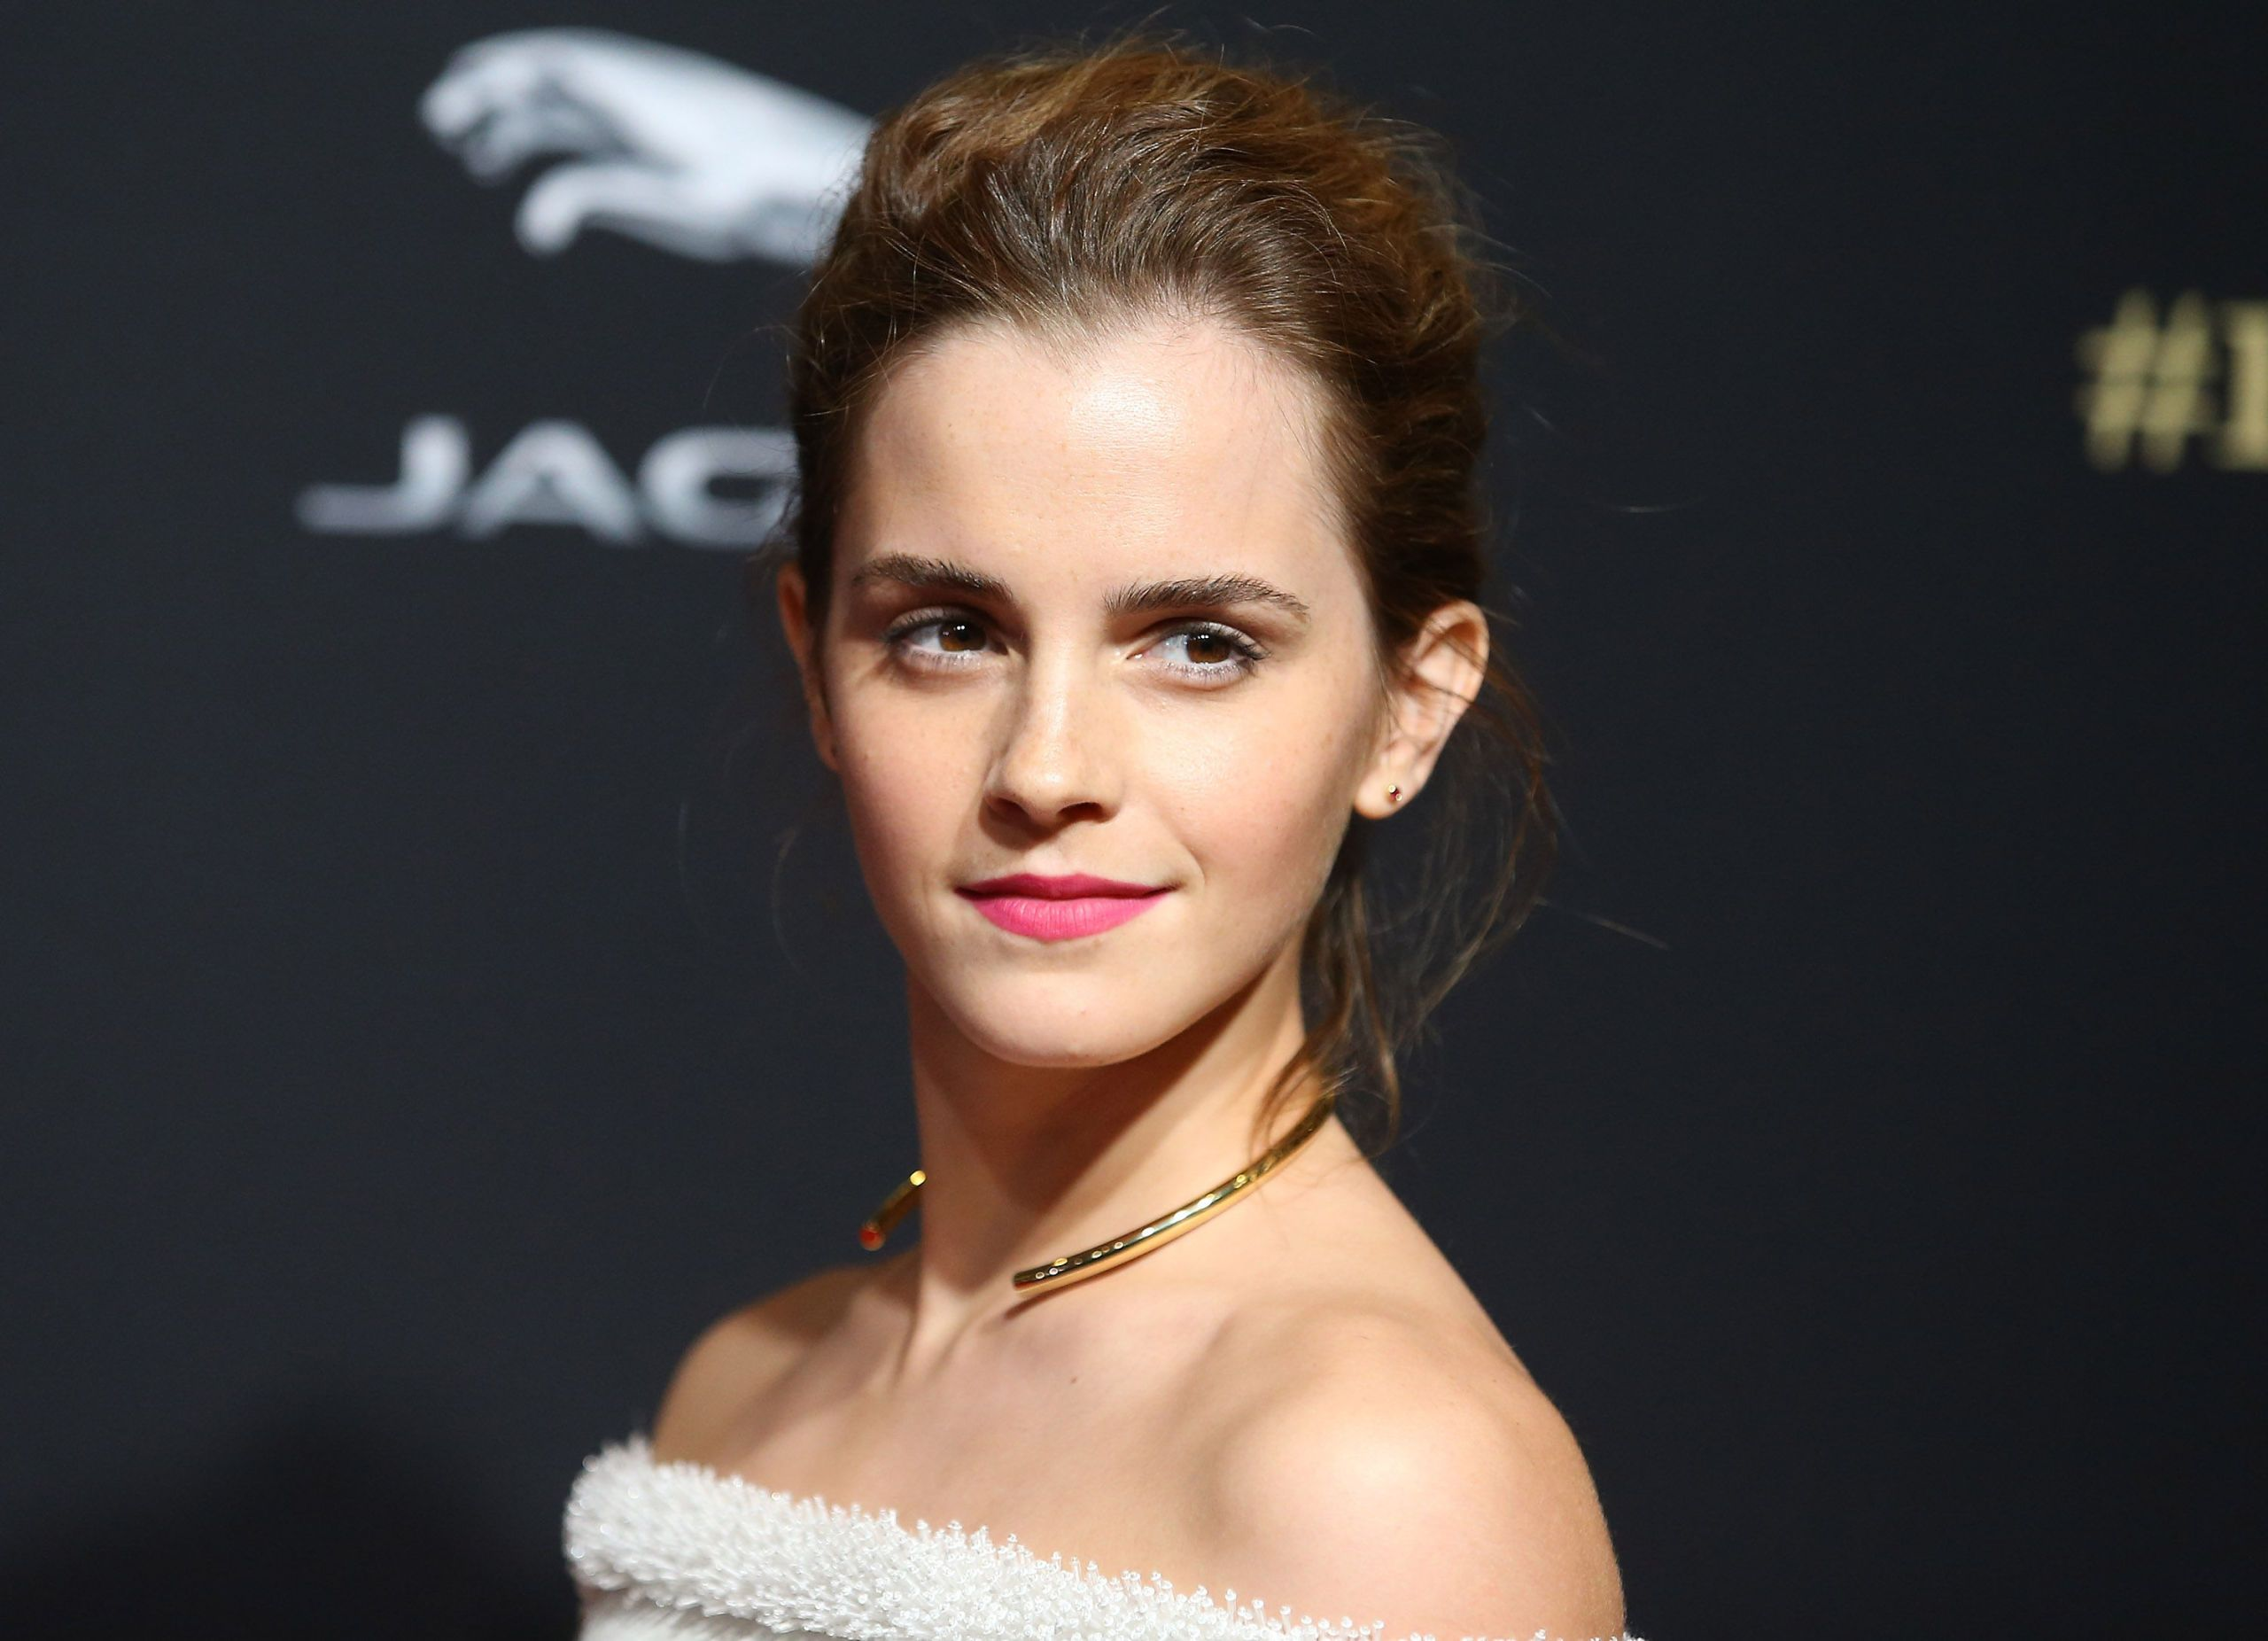 What the British Paparazzi Did to Celebrate Emma Watson's 18th Birthday Will Disgust You